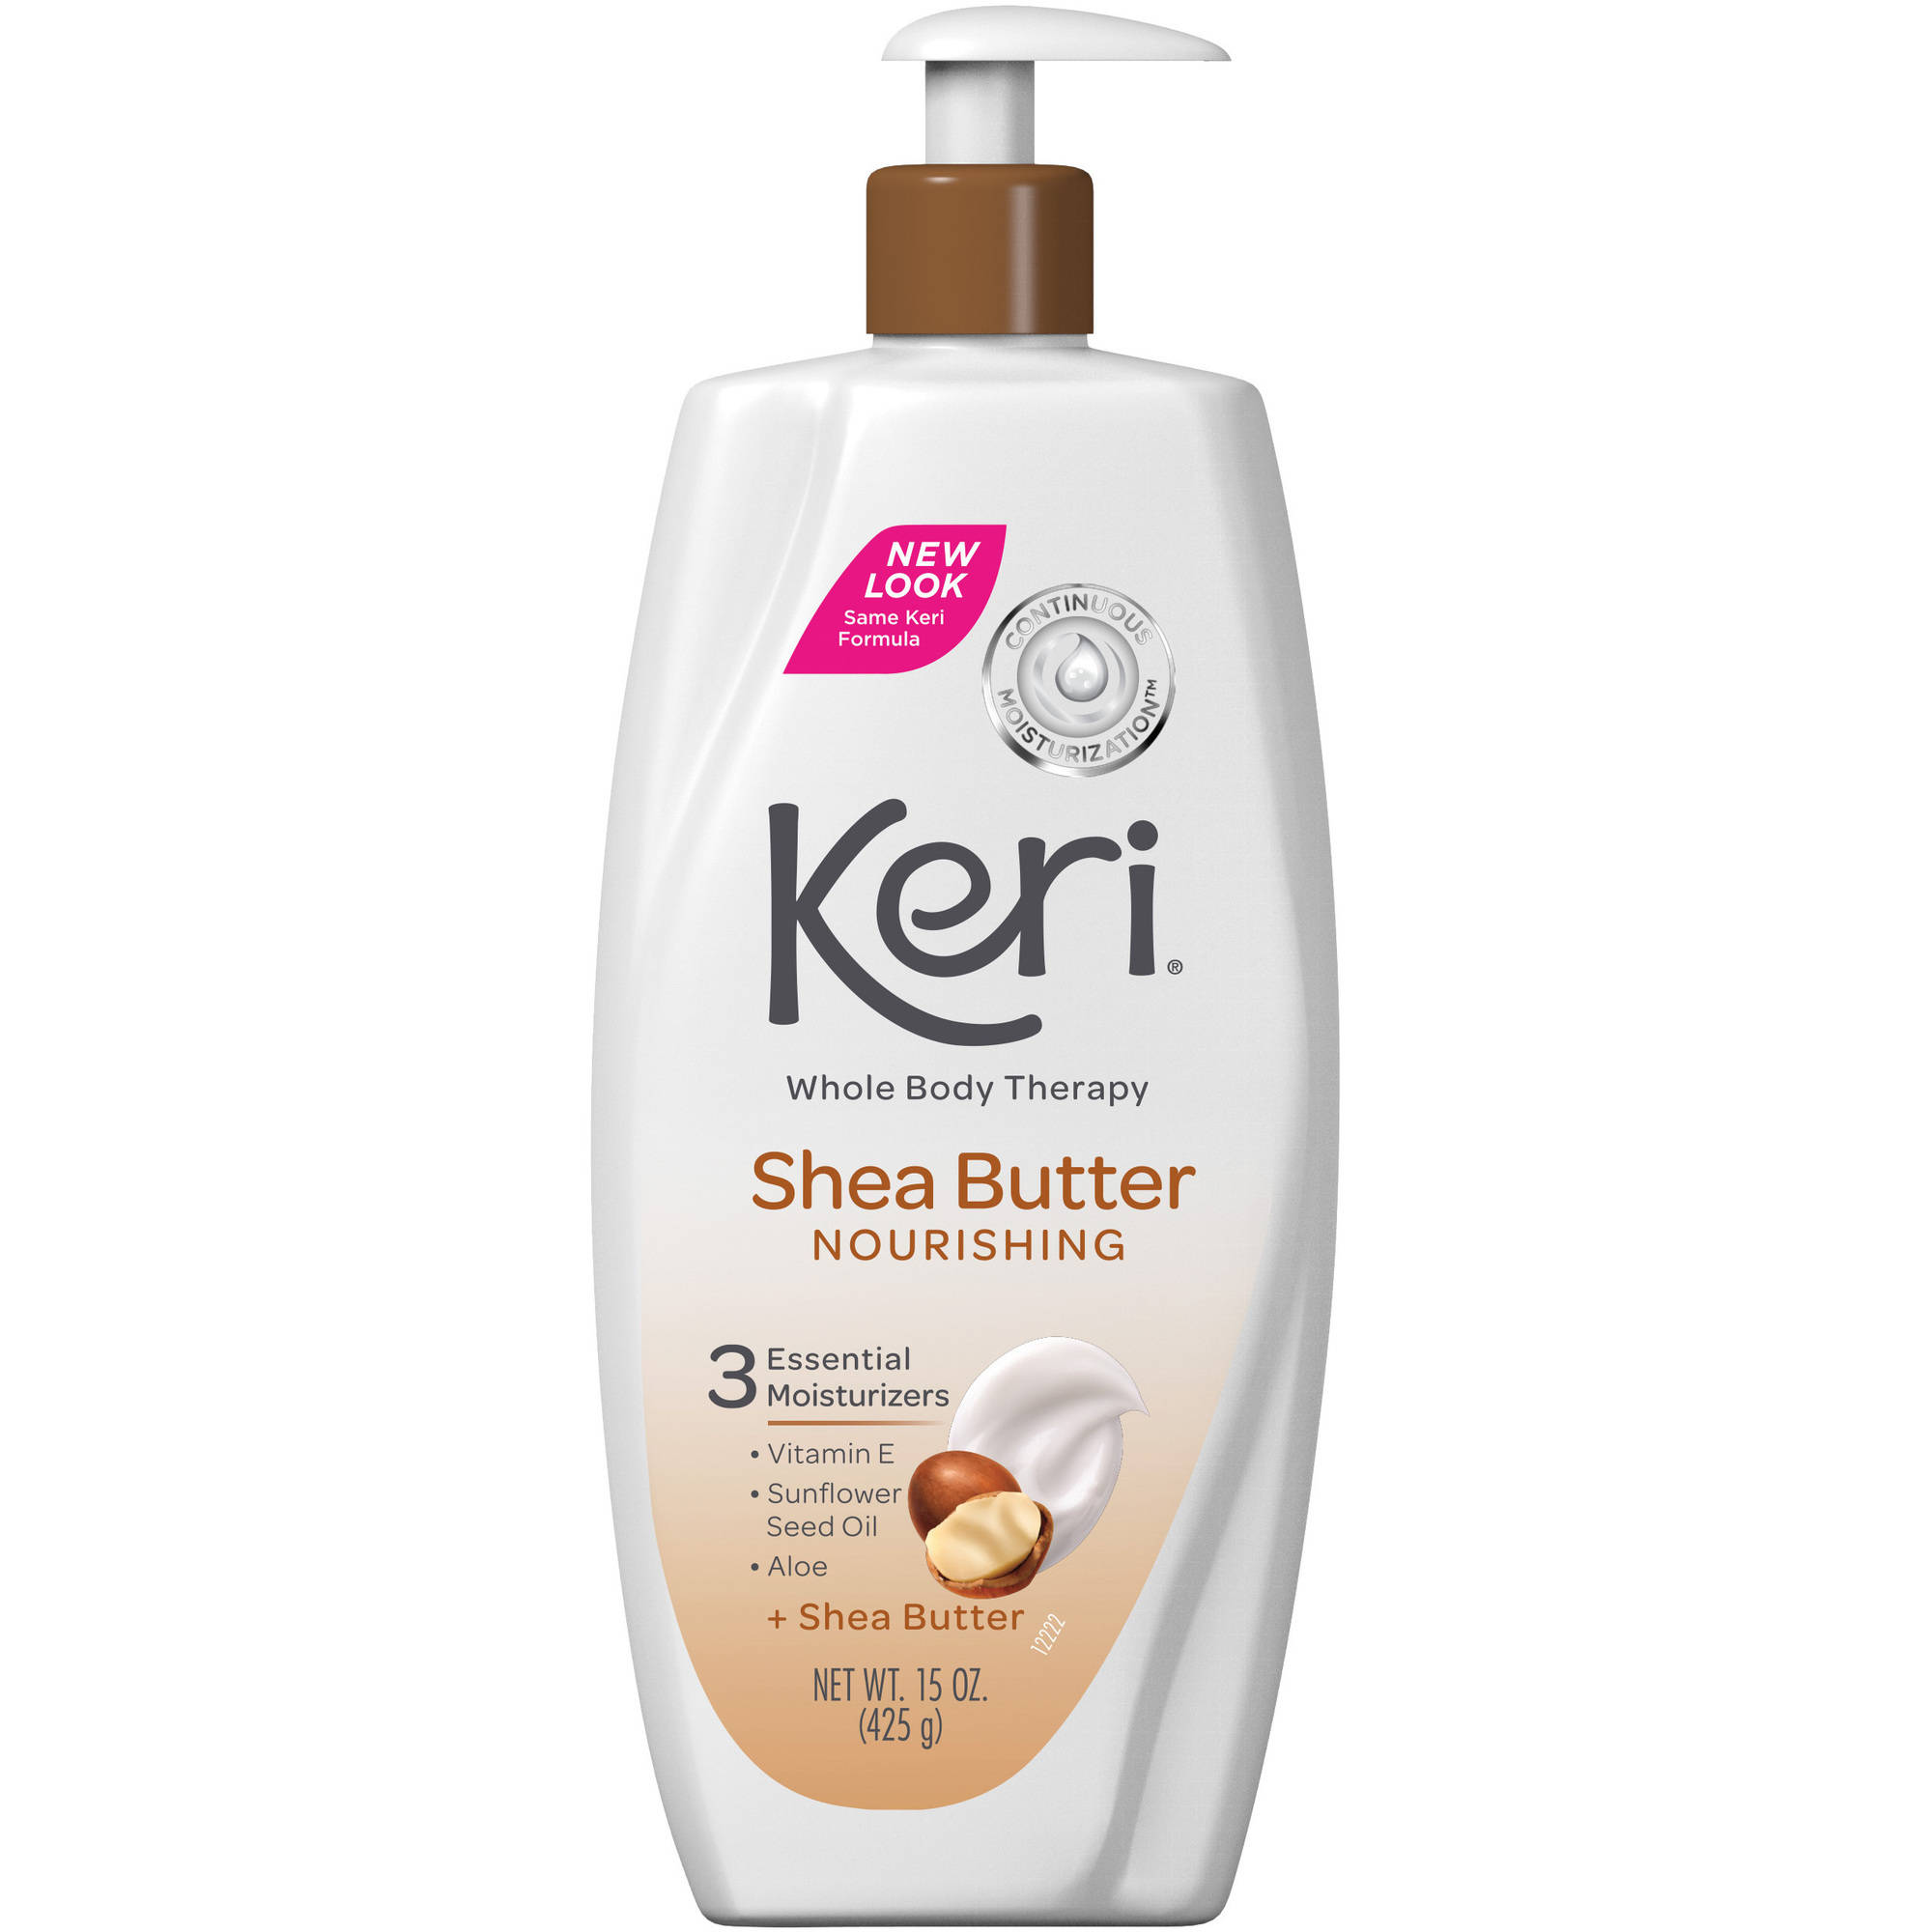 Keri Nourishing Shea Butter & Vitamin E Lotion, 15 fl oz